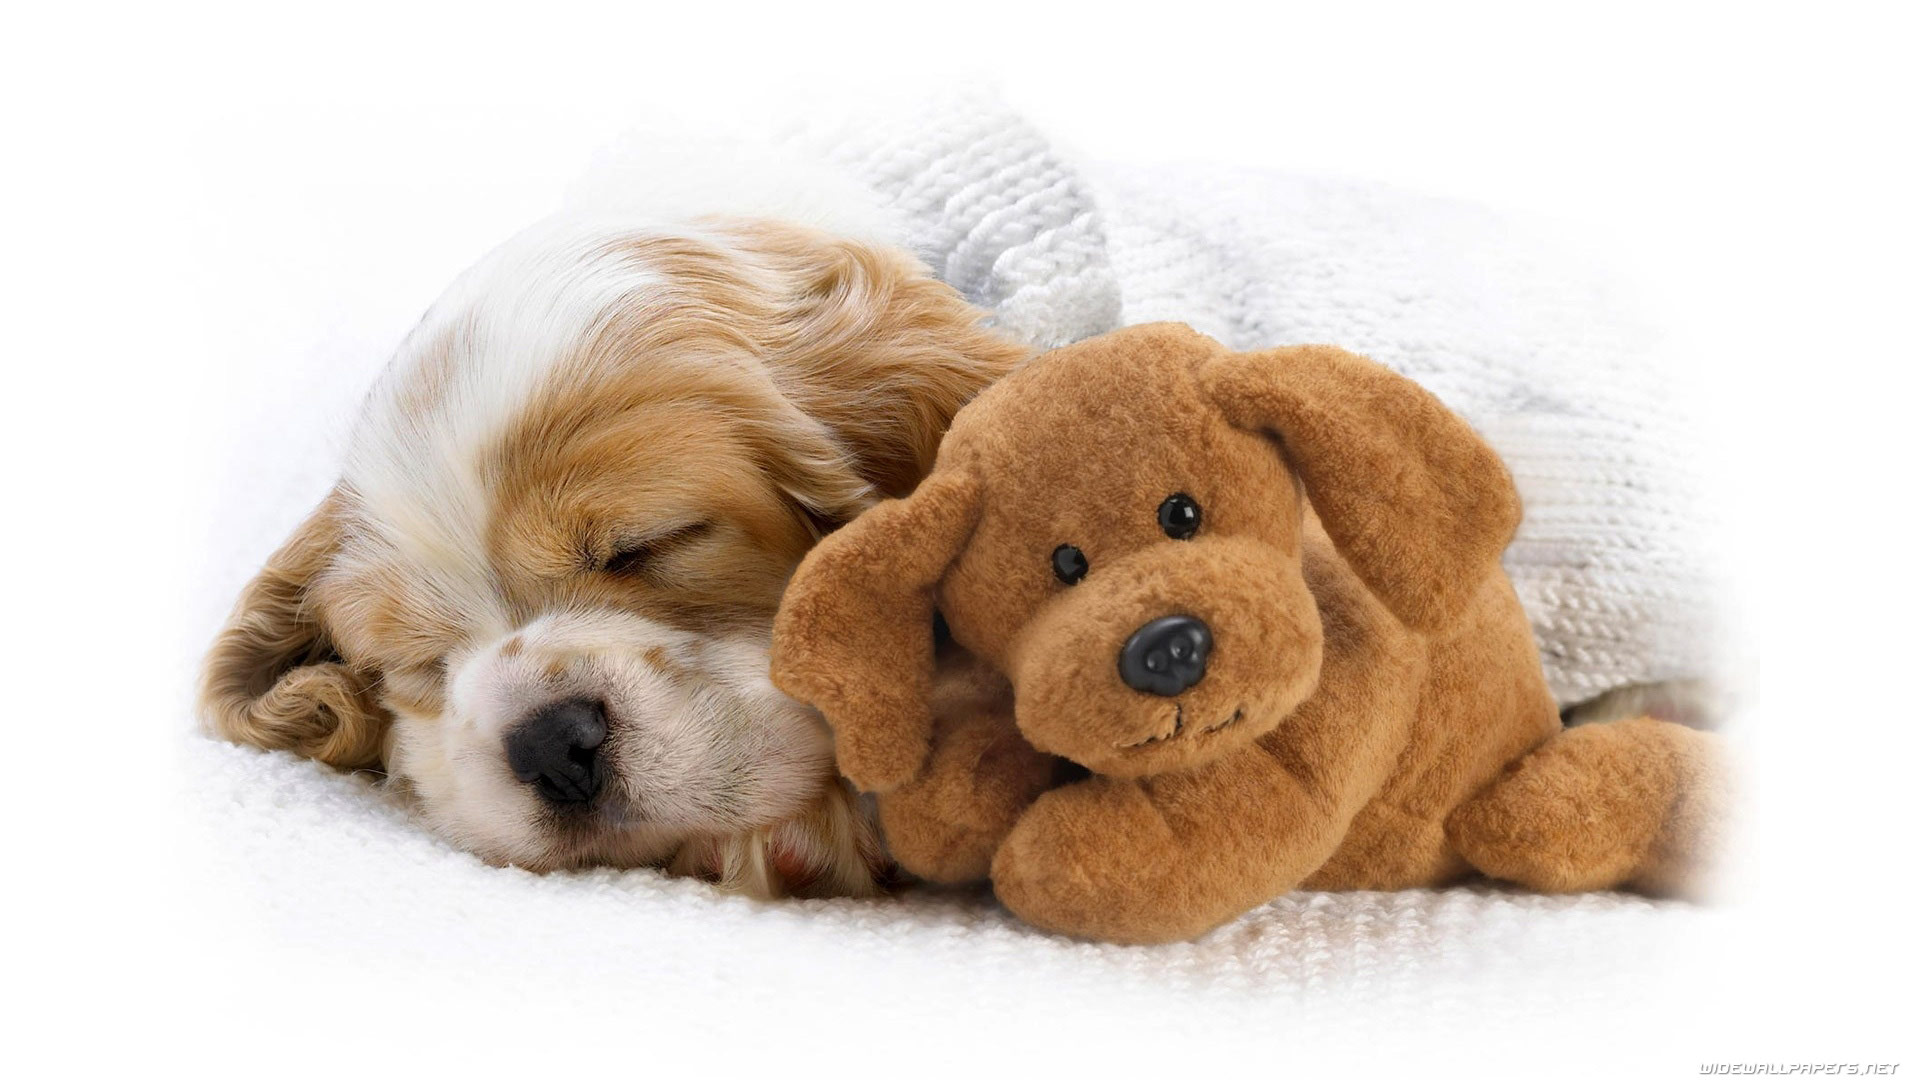 Cute Puppy Wallpapers Those Are Perfect To Make Your Mood Happy - Let Us Publish